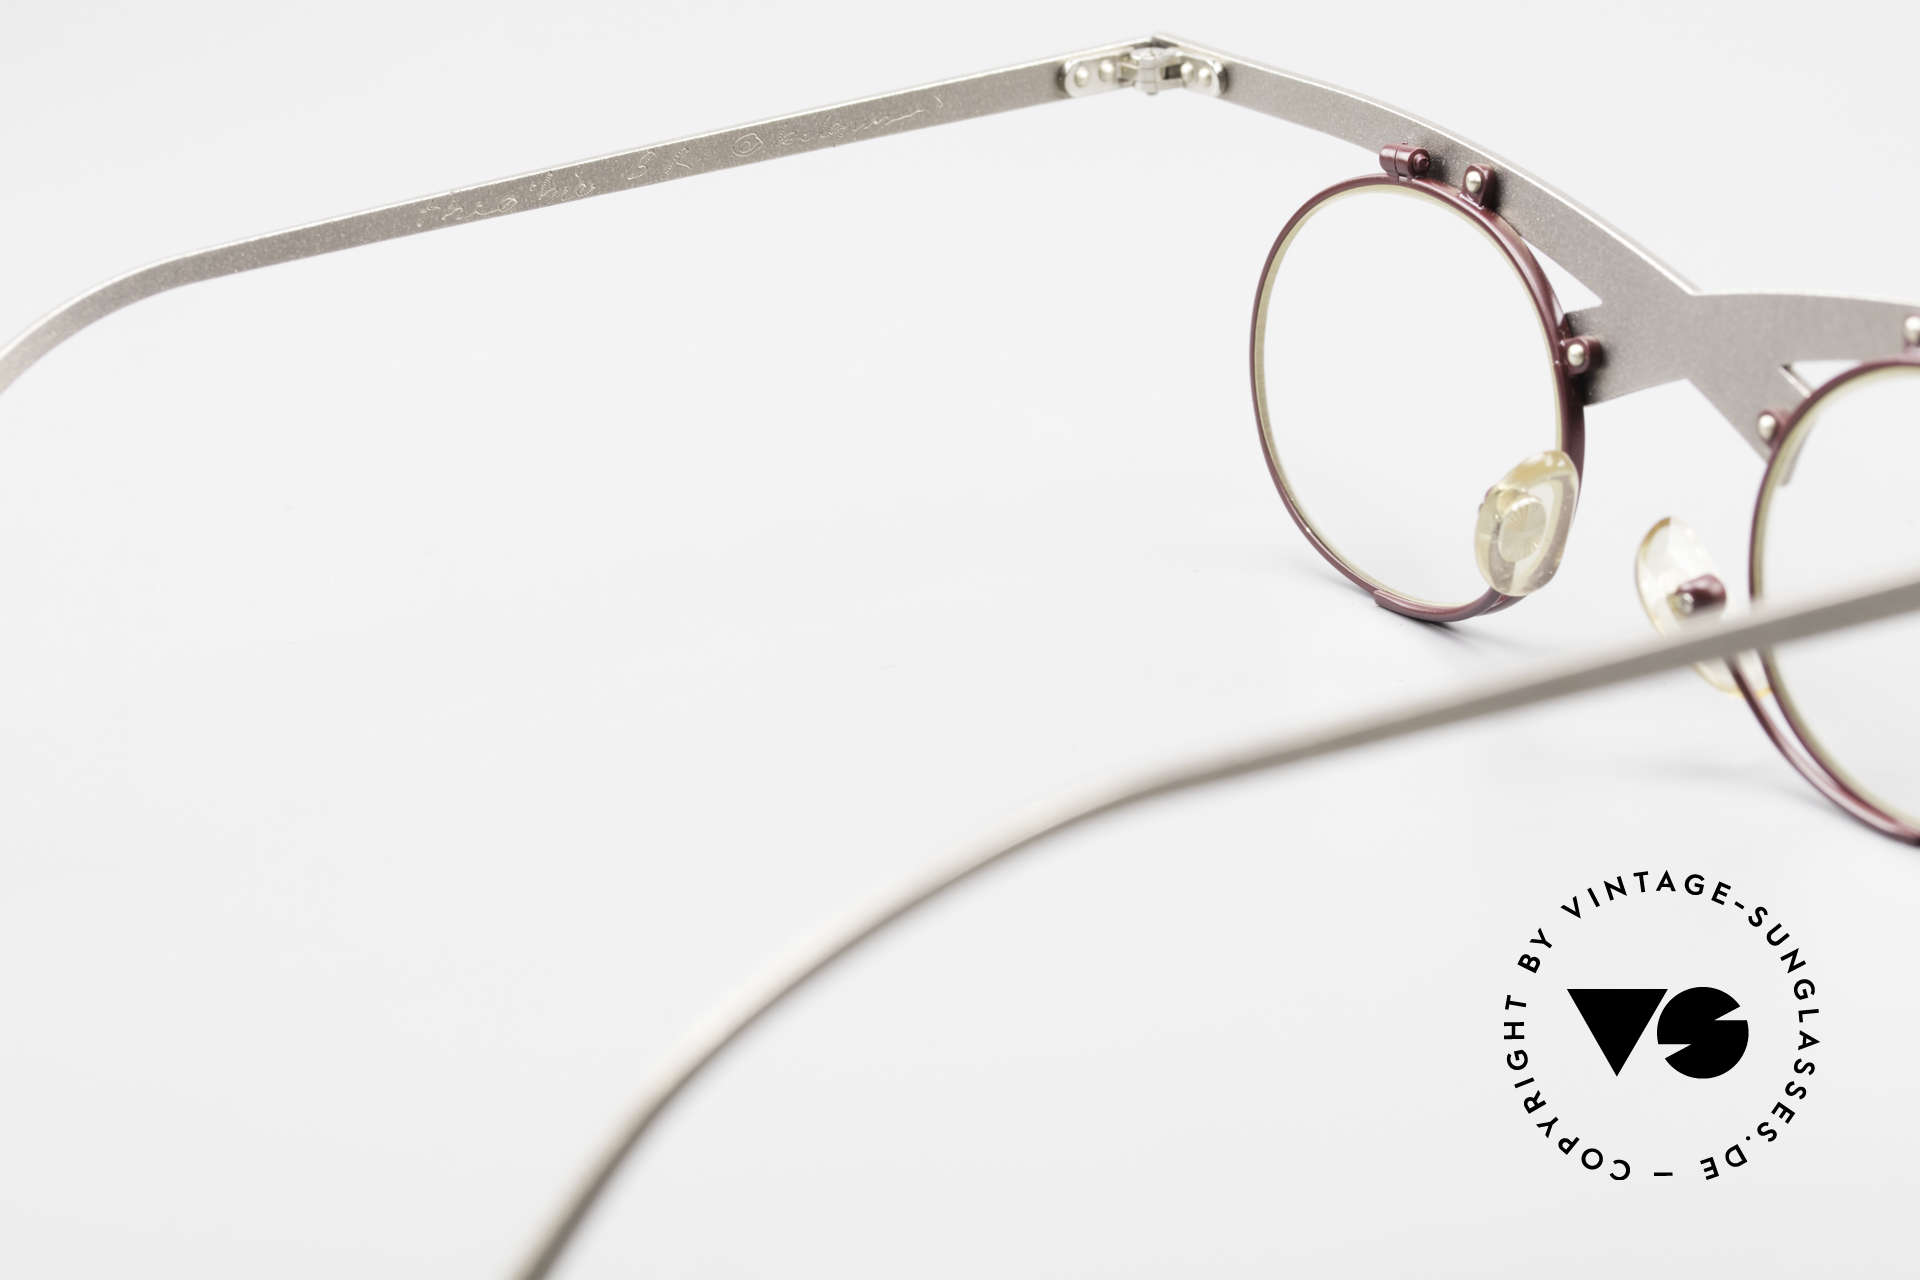 Theo Belgium Hie 3R Crazy Vintage Eyeglasses 90's, clear DEMO lenses should be replaced with prescriptions, Made for Women